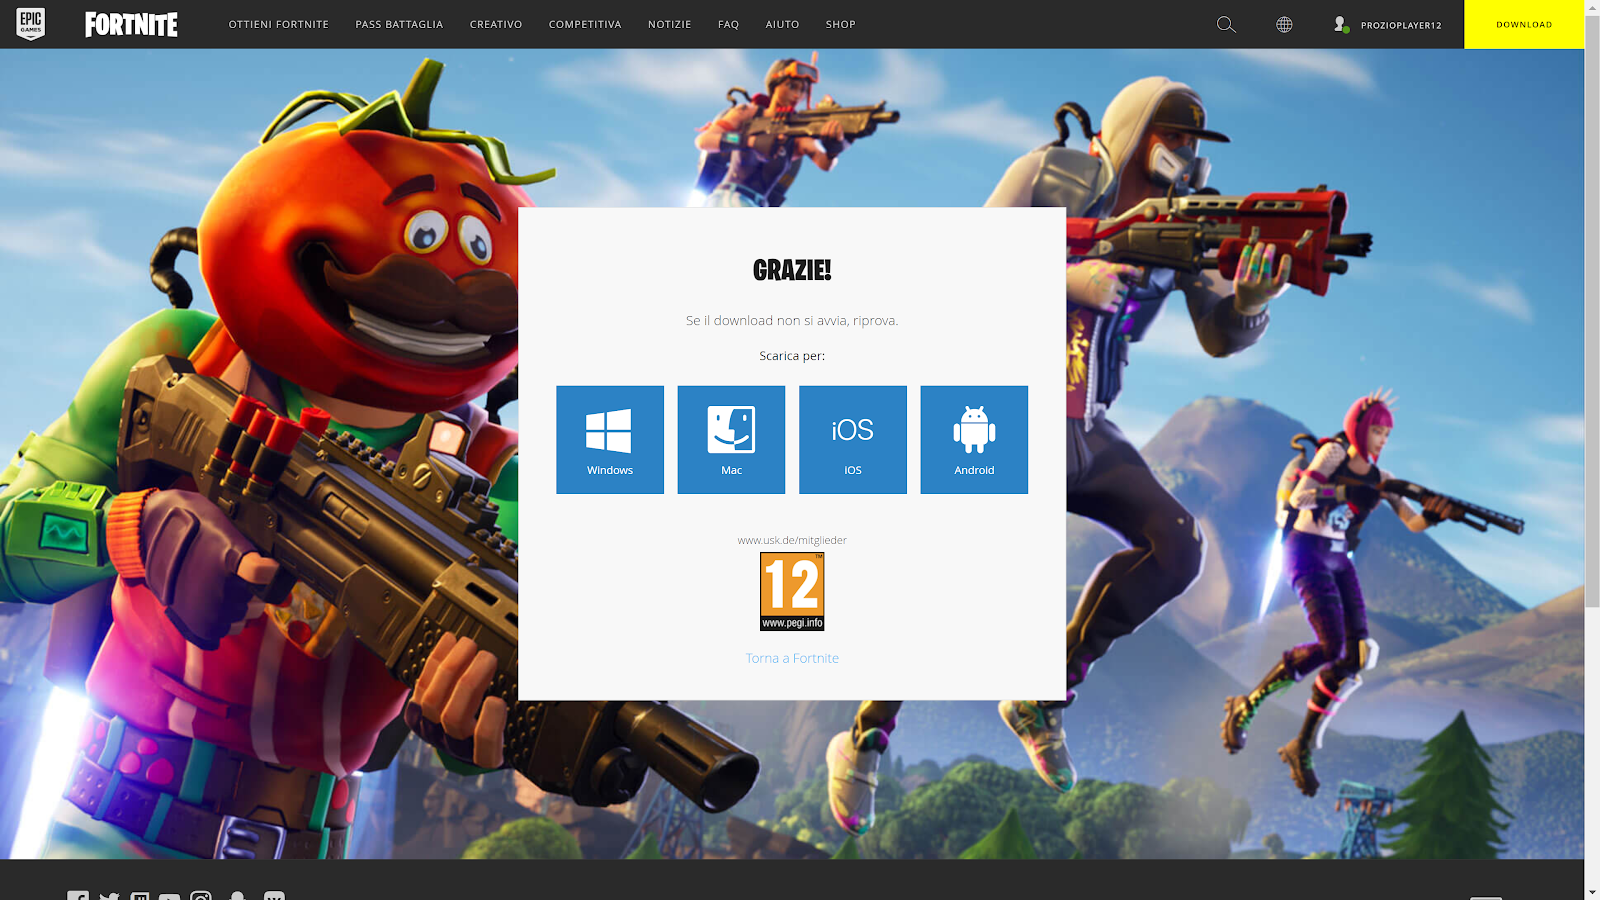 Come Installare Fortnite Su PC - Download Immagine #4